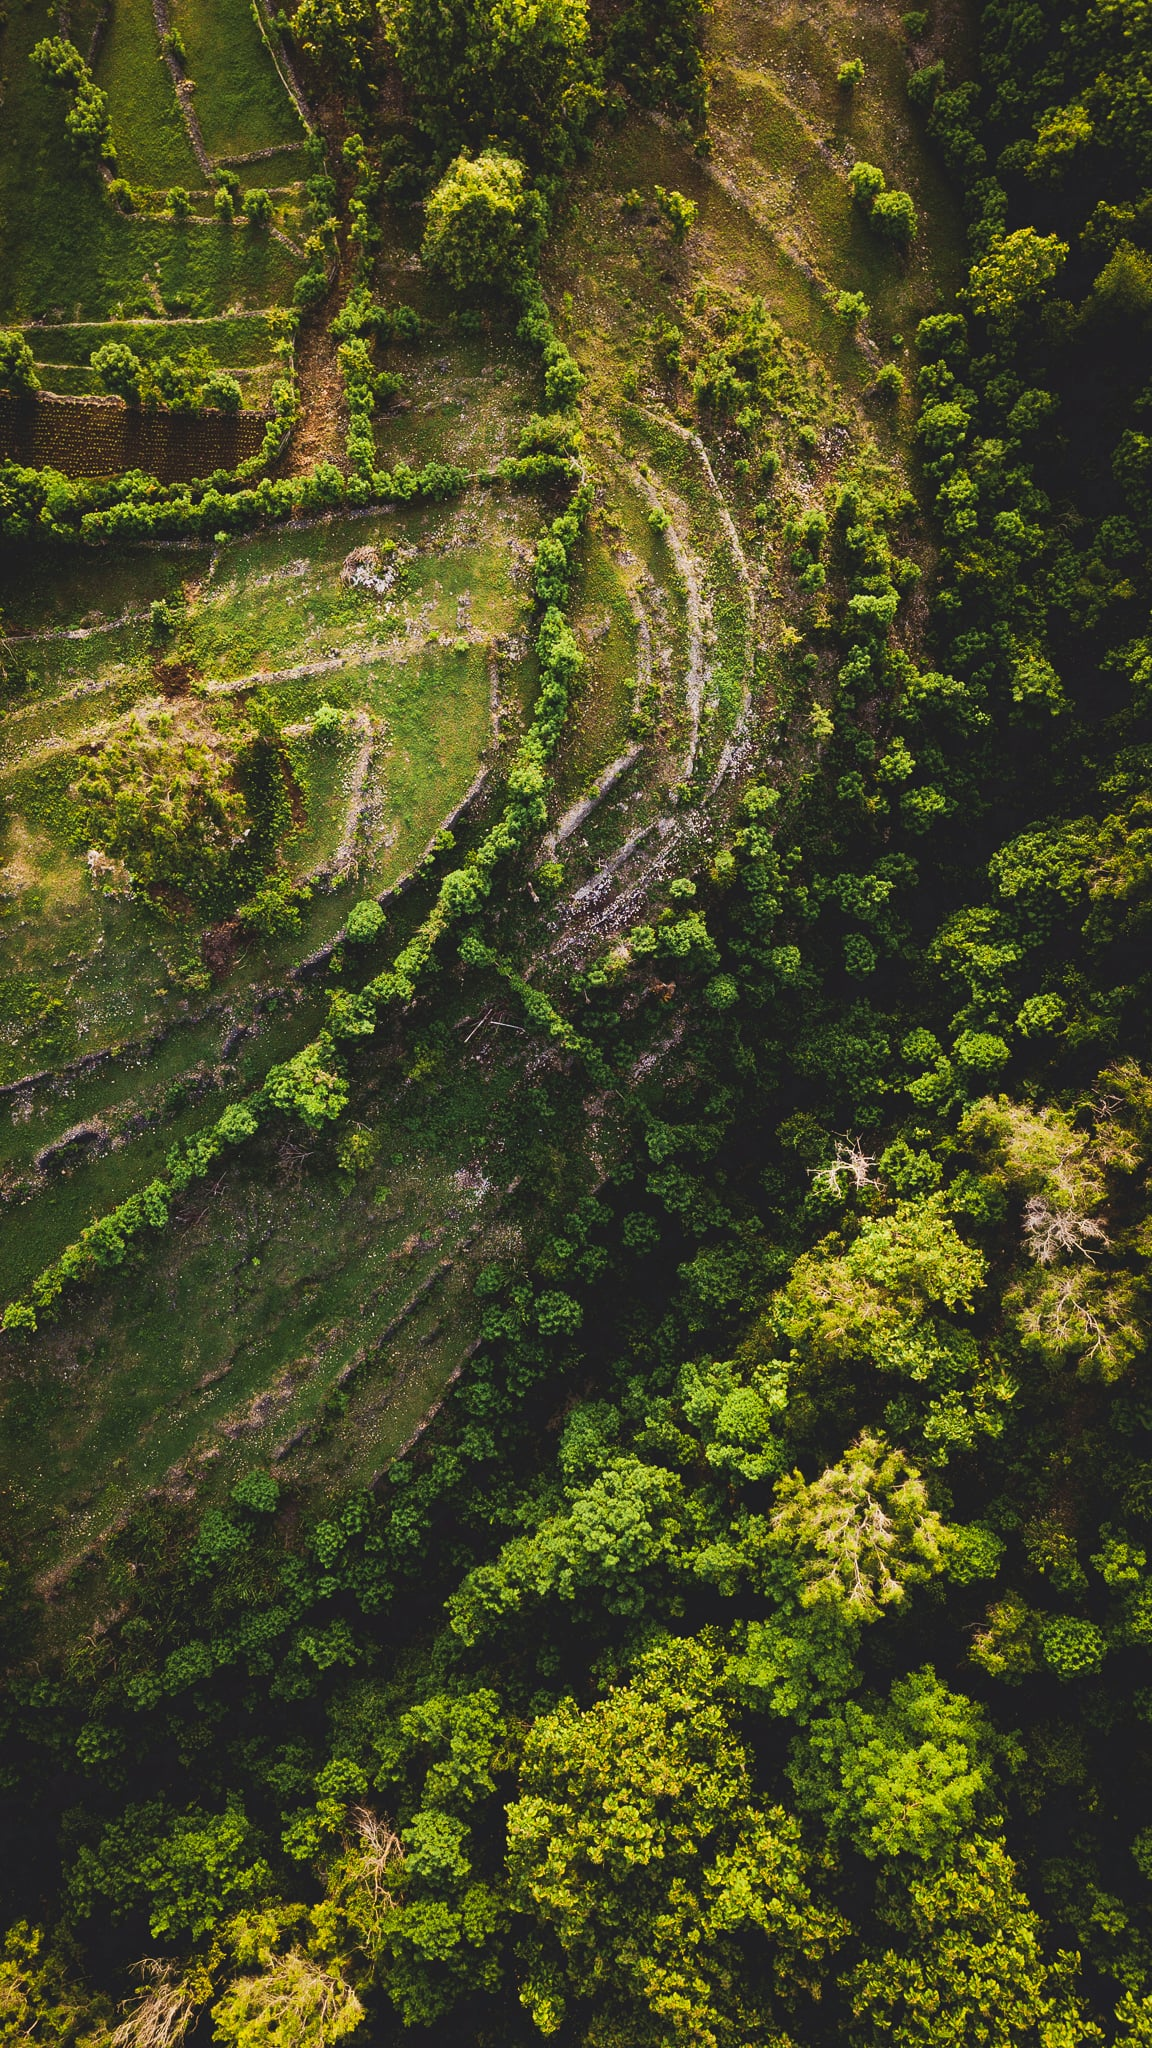 Aerial view of agricultural terraces on the slopes of a hill with trees growing from the bottom of a valley